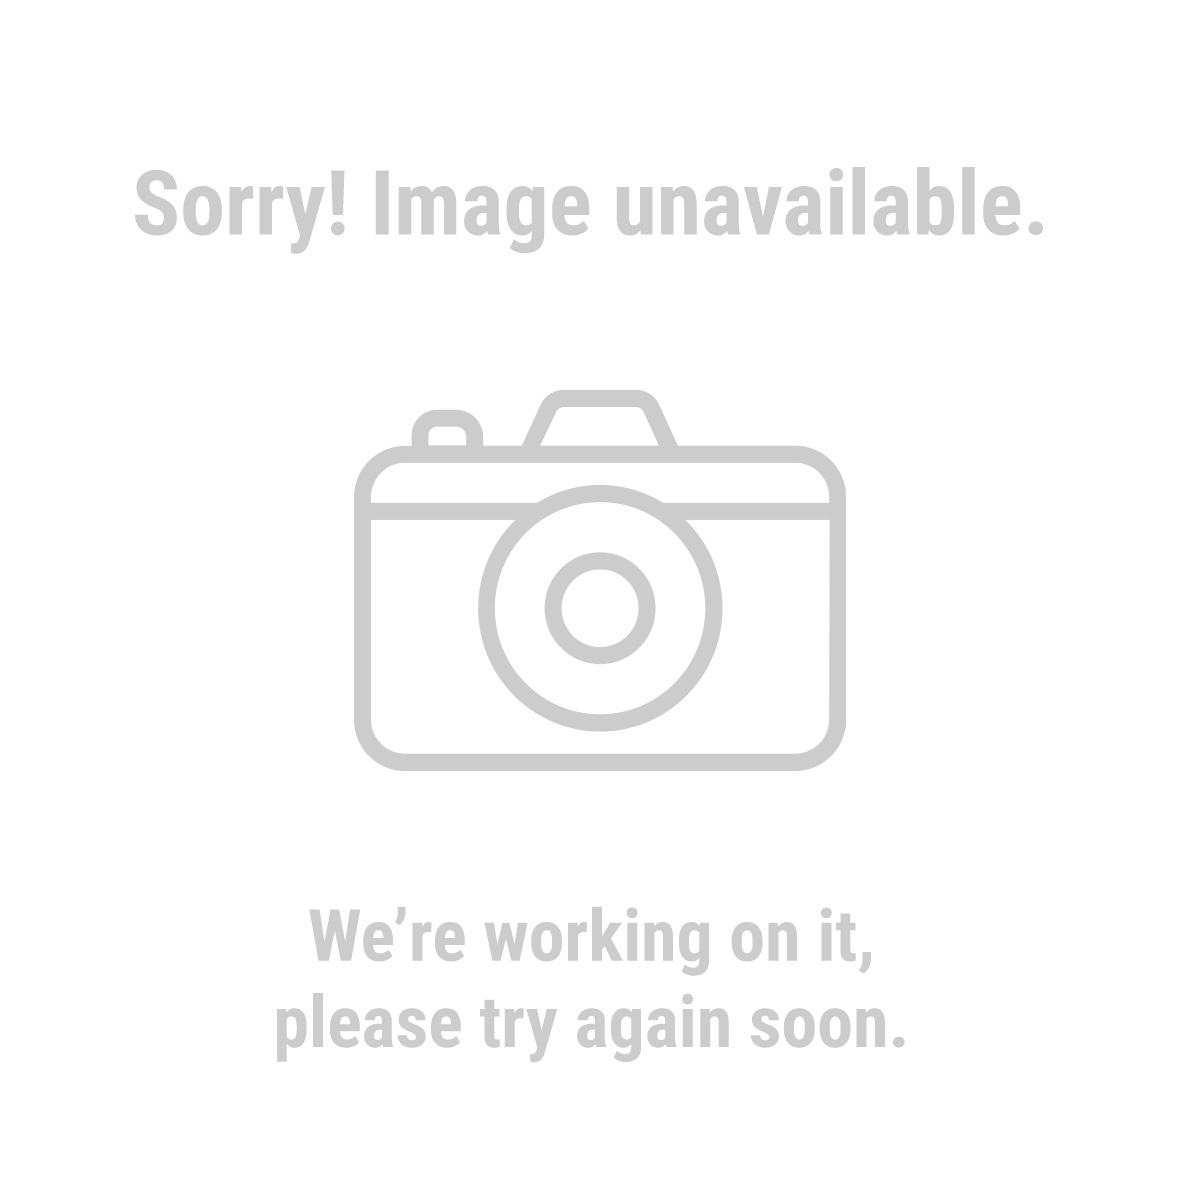 Bunker Hill Security® 62414 30 ft. x 3/8 in. Braided Steel Security Cable